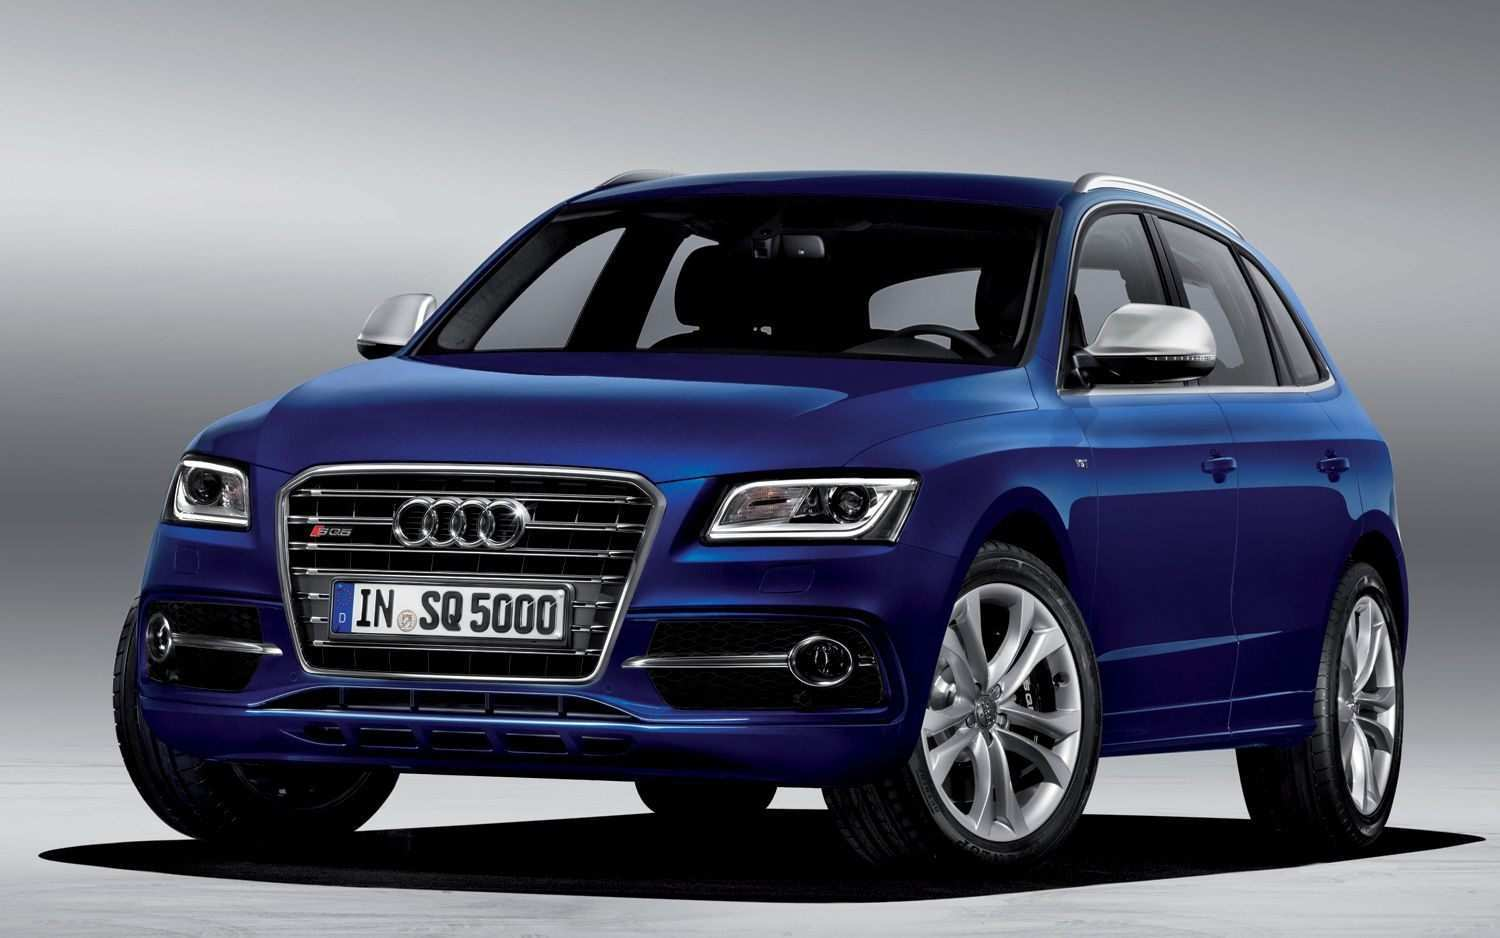 39 All New 2020 Audi Q5 Suv New Concept for 2020 Audi Q5 Suv